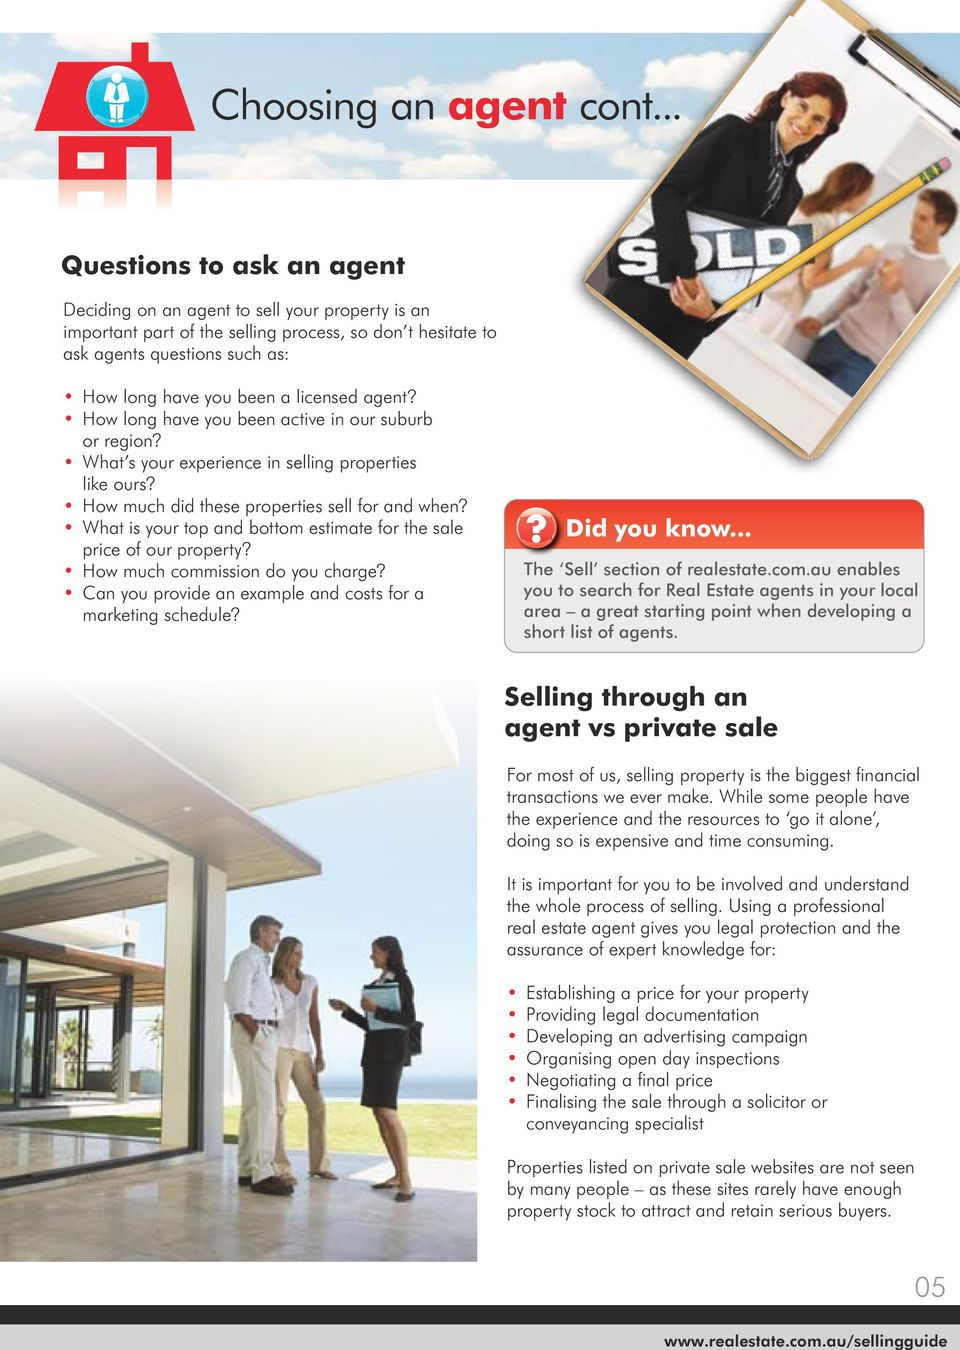 licensed agent? How long have you been active in our suburb or region? What s your experience in selling properties like ours? How much did these properties sell for and when?